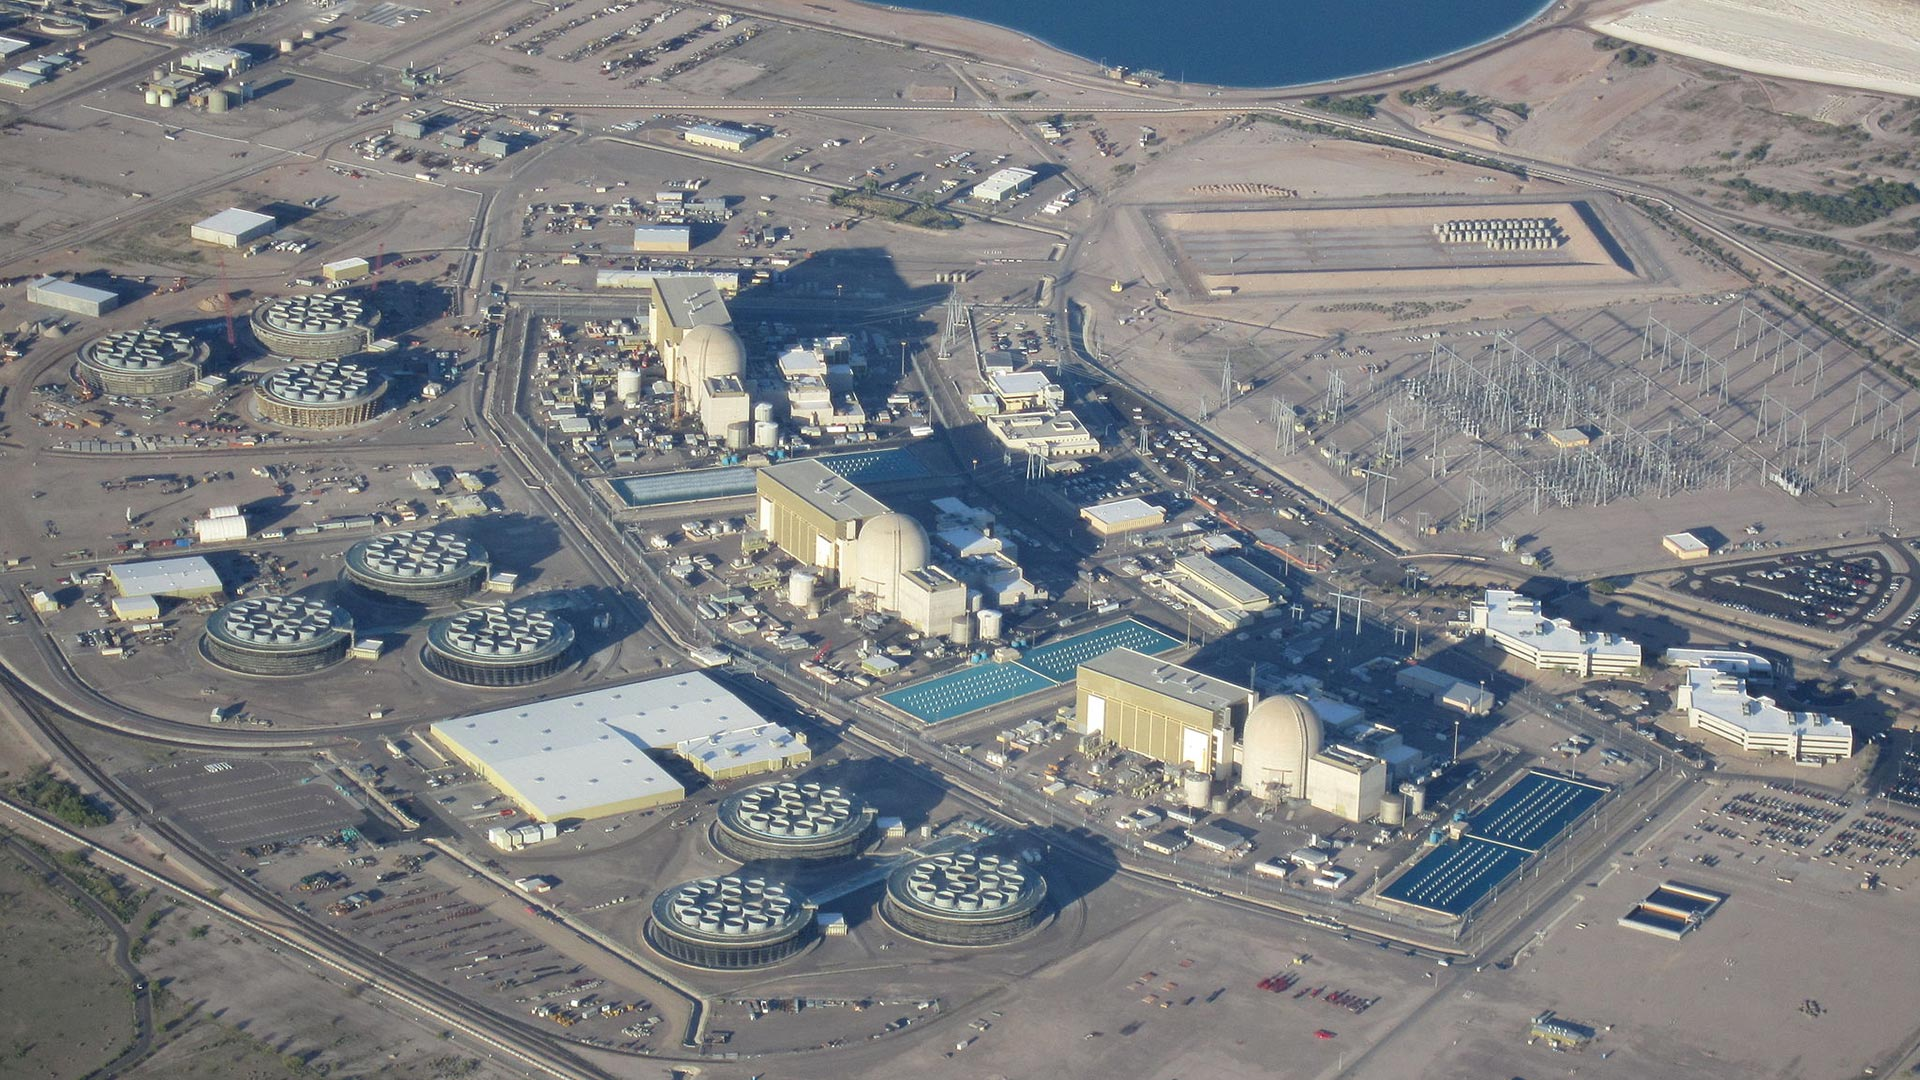 The Palo Verde Nuclear Generating Station.